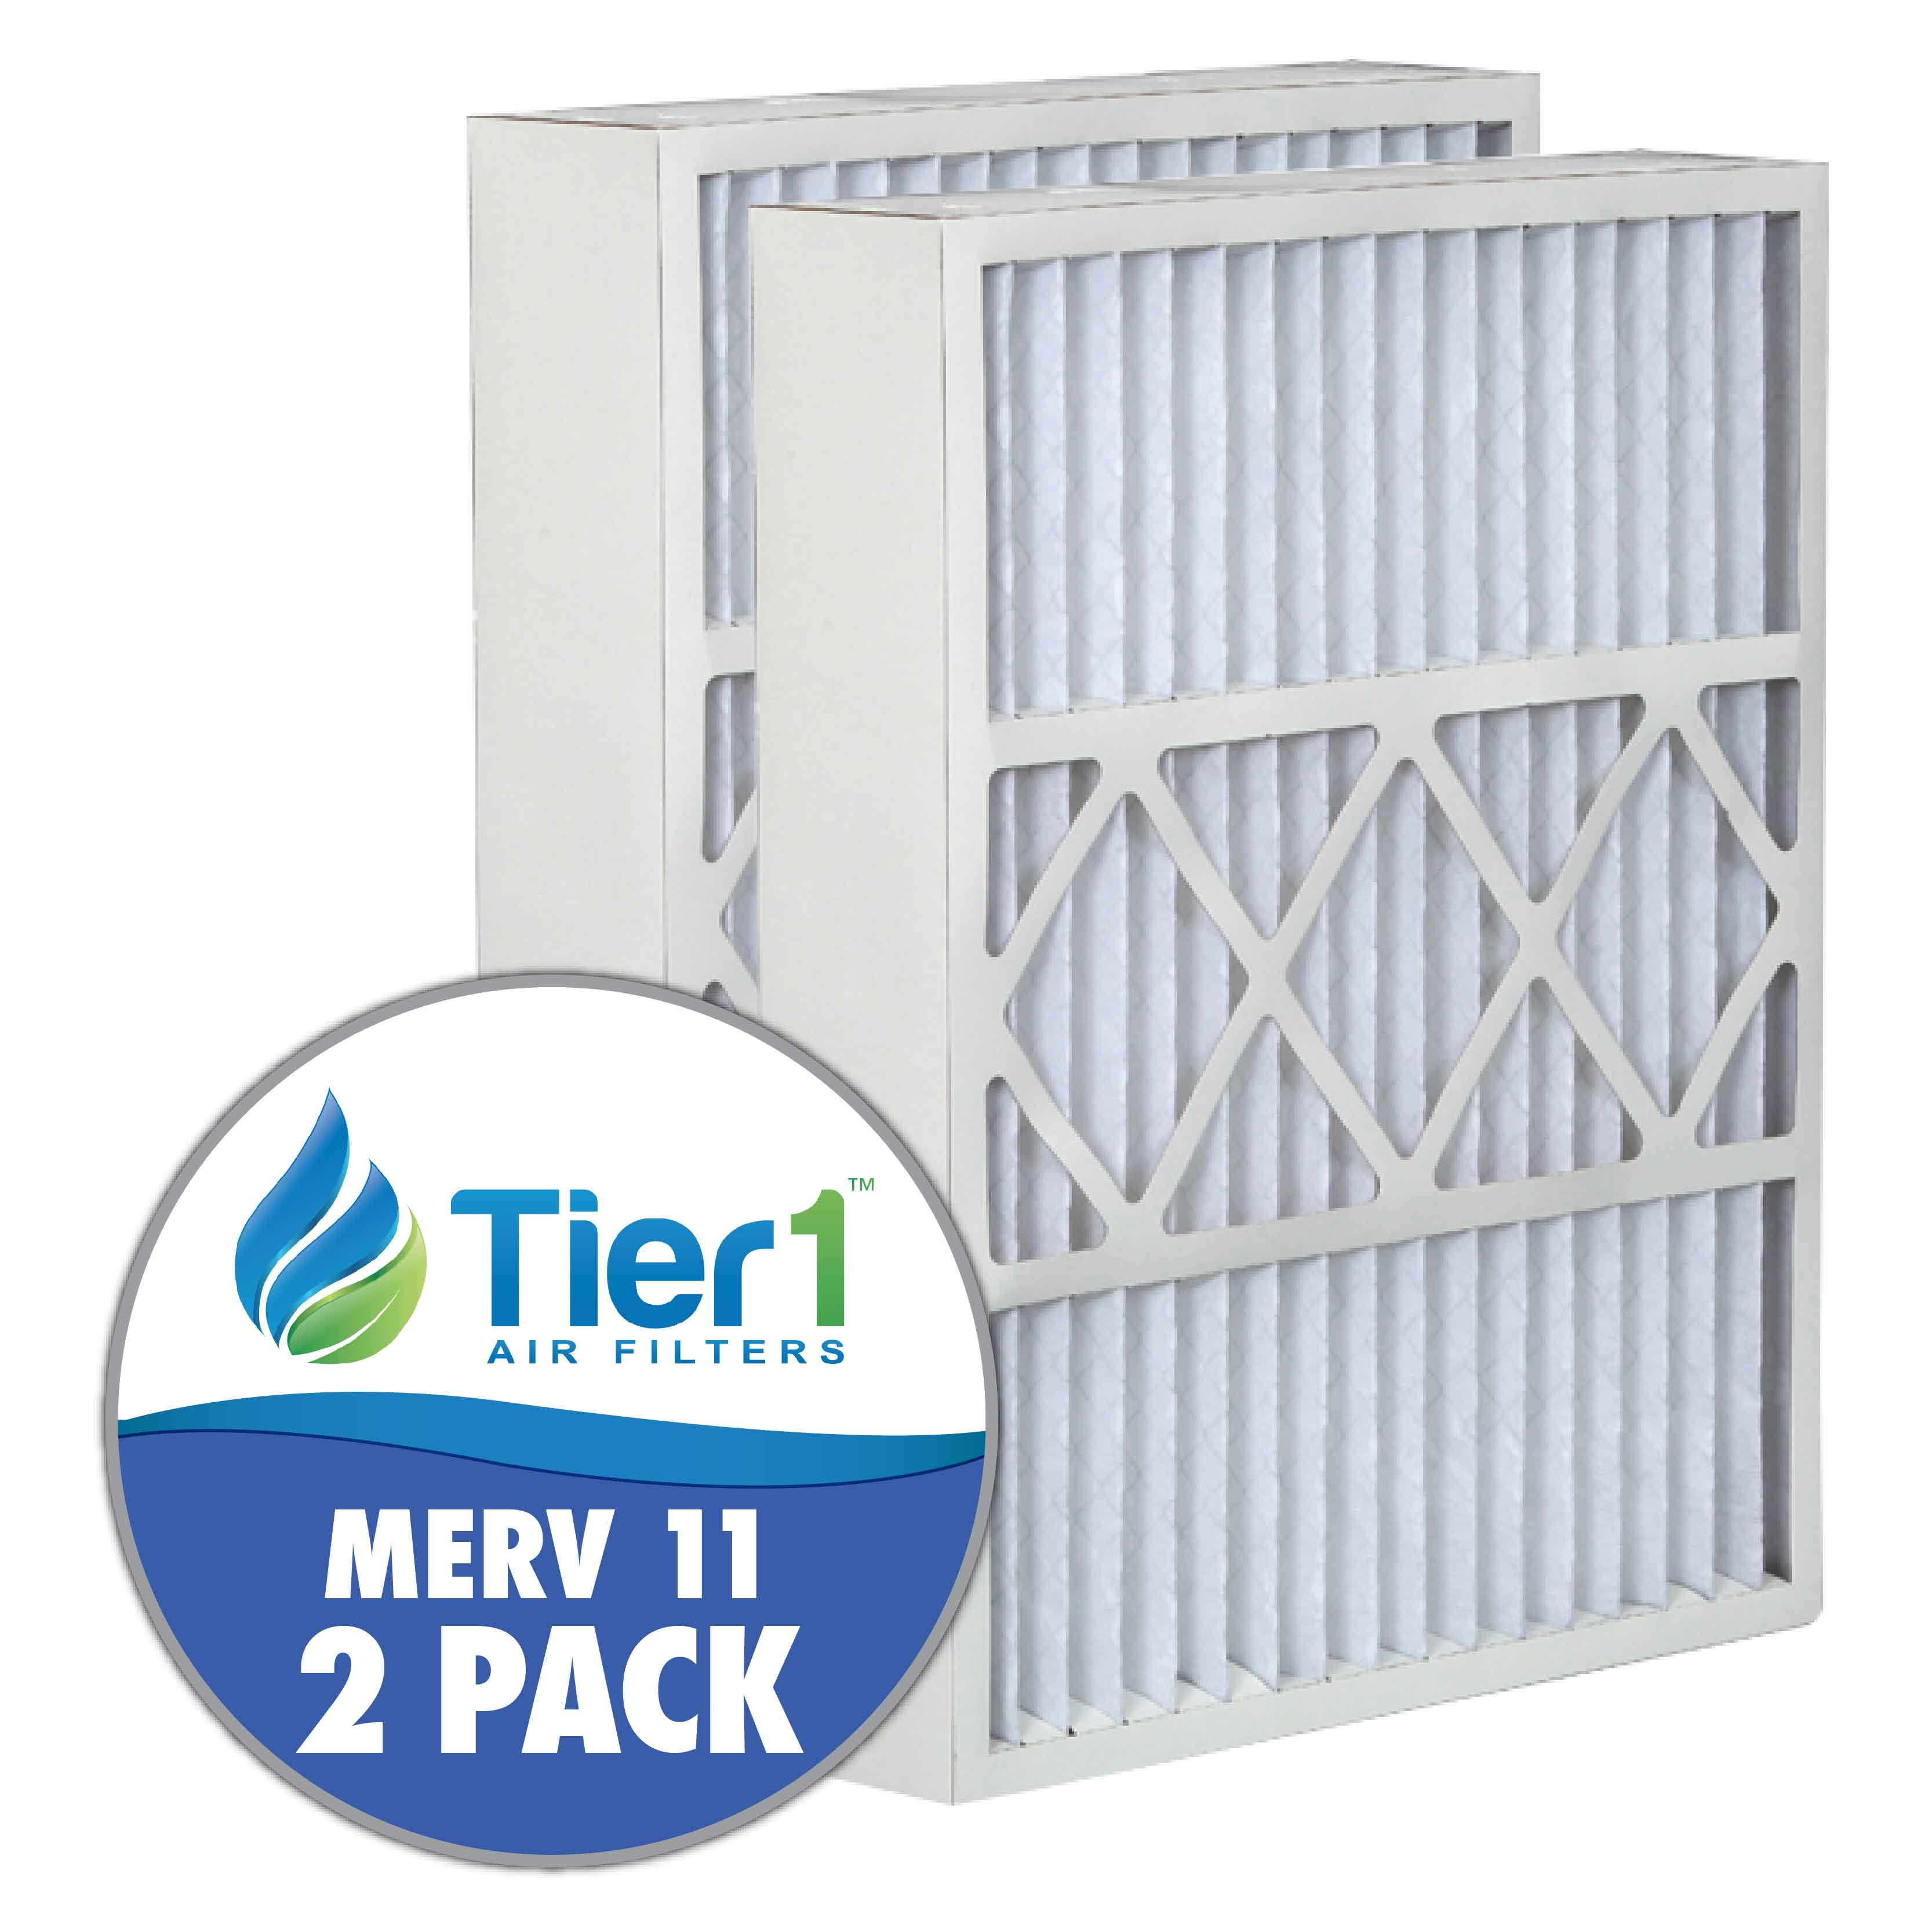 Tier1 brand replacement for Honeywell FC100A1003 & FC200E1003 - 16 x 20 x 5 - MERV 11 (2-Pack) TIER1-DPFW16X20X5M11